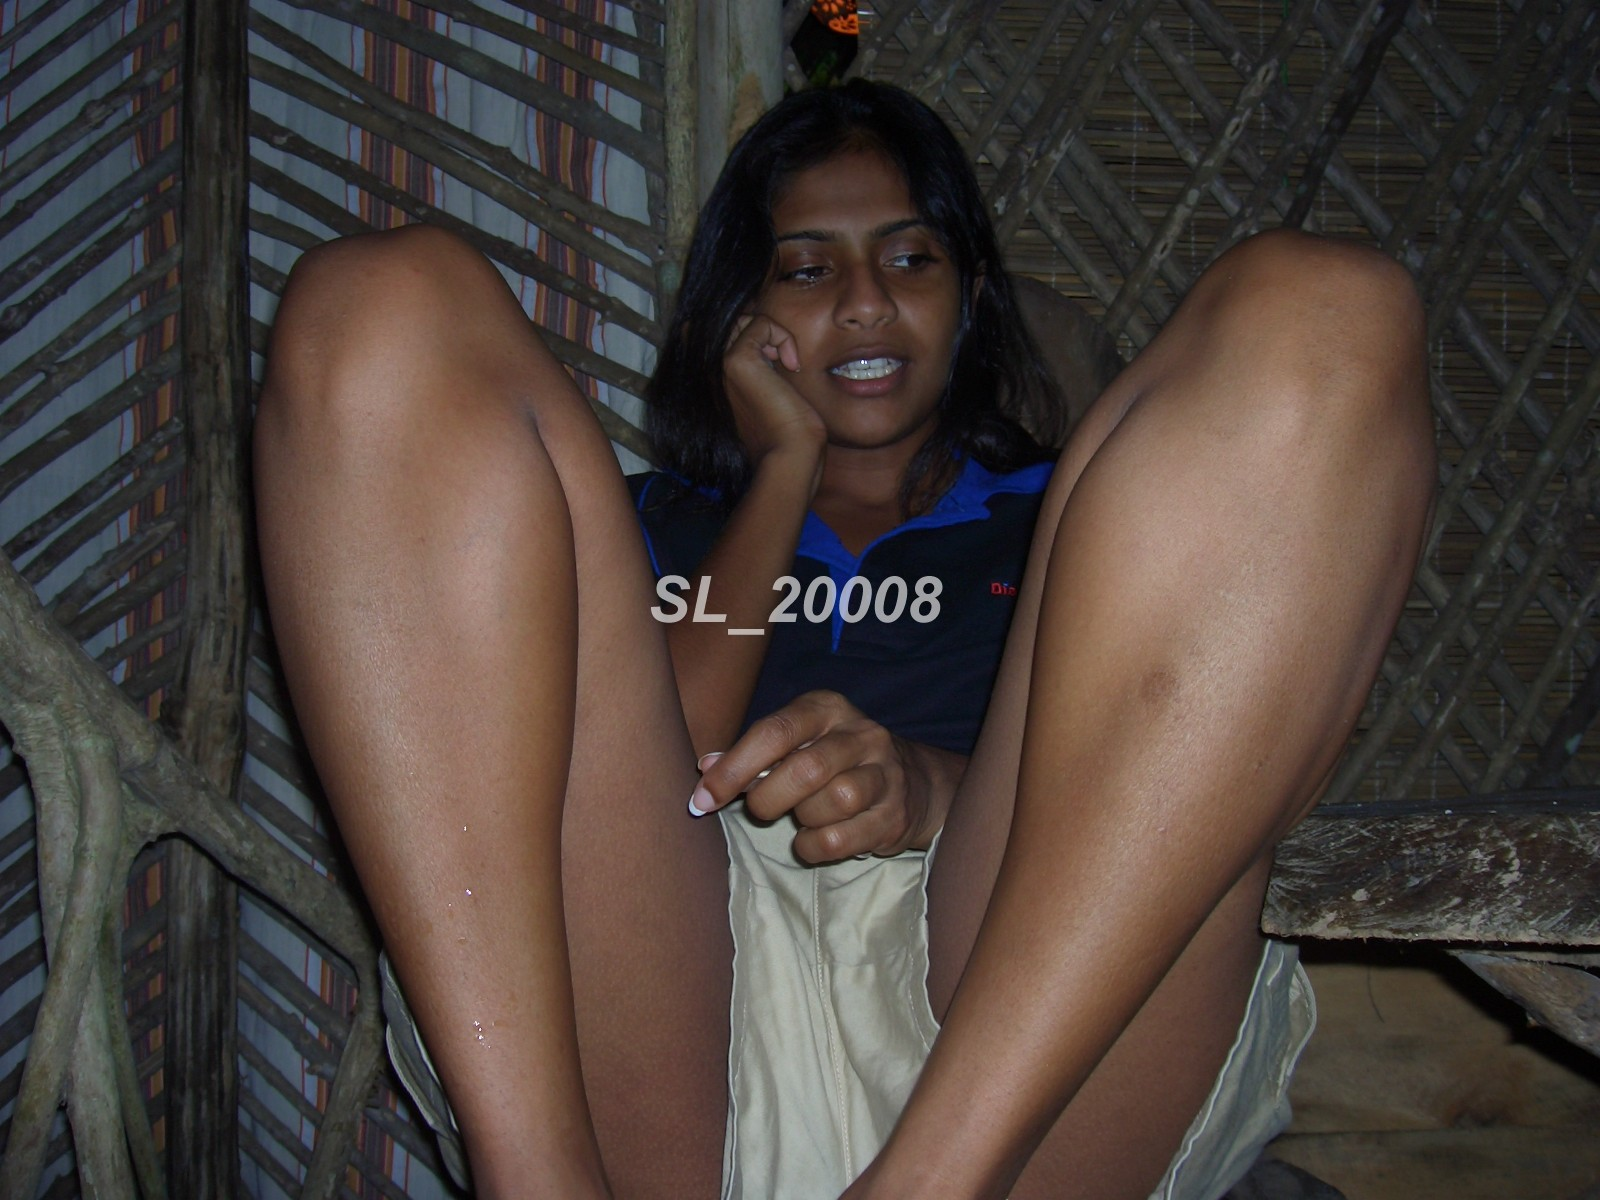 sri-lankan-girls-fucking-videos-sherry-springfield-nude